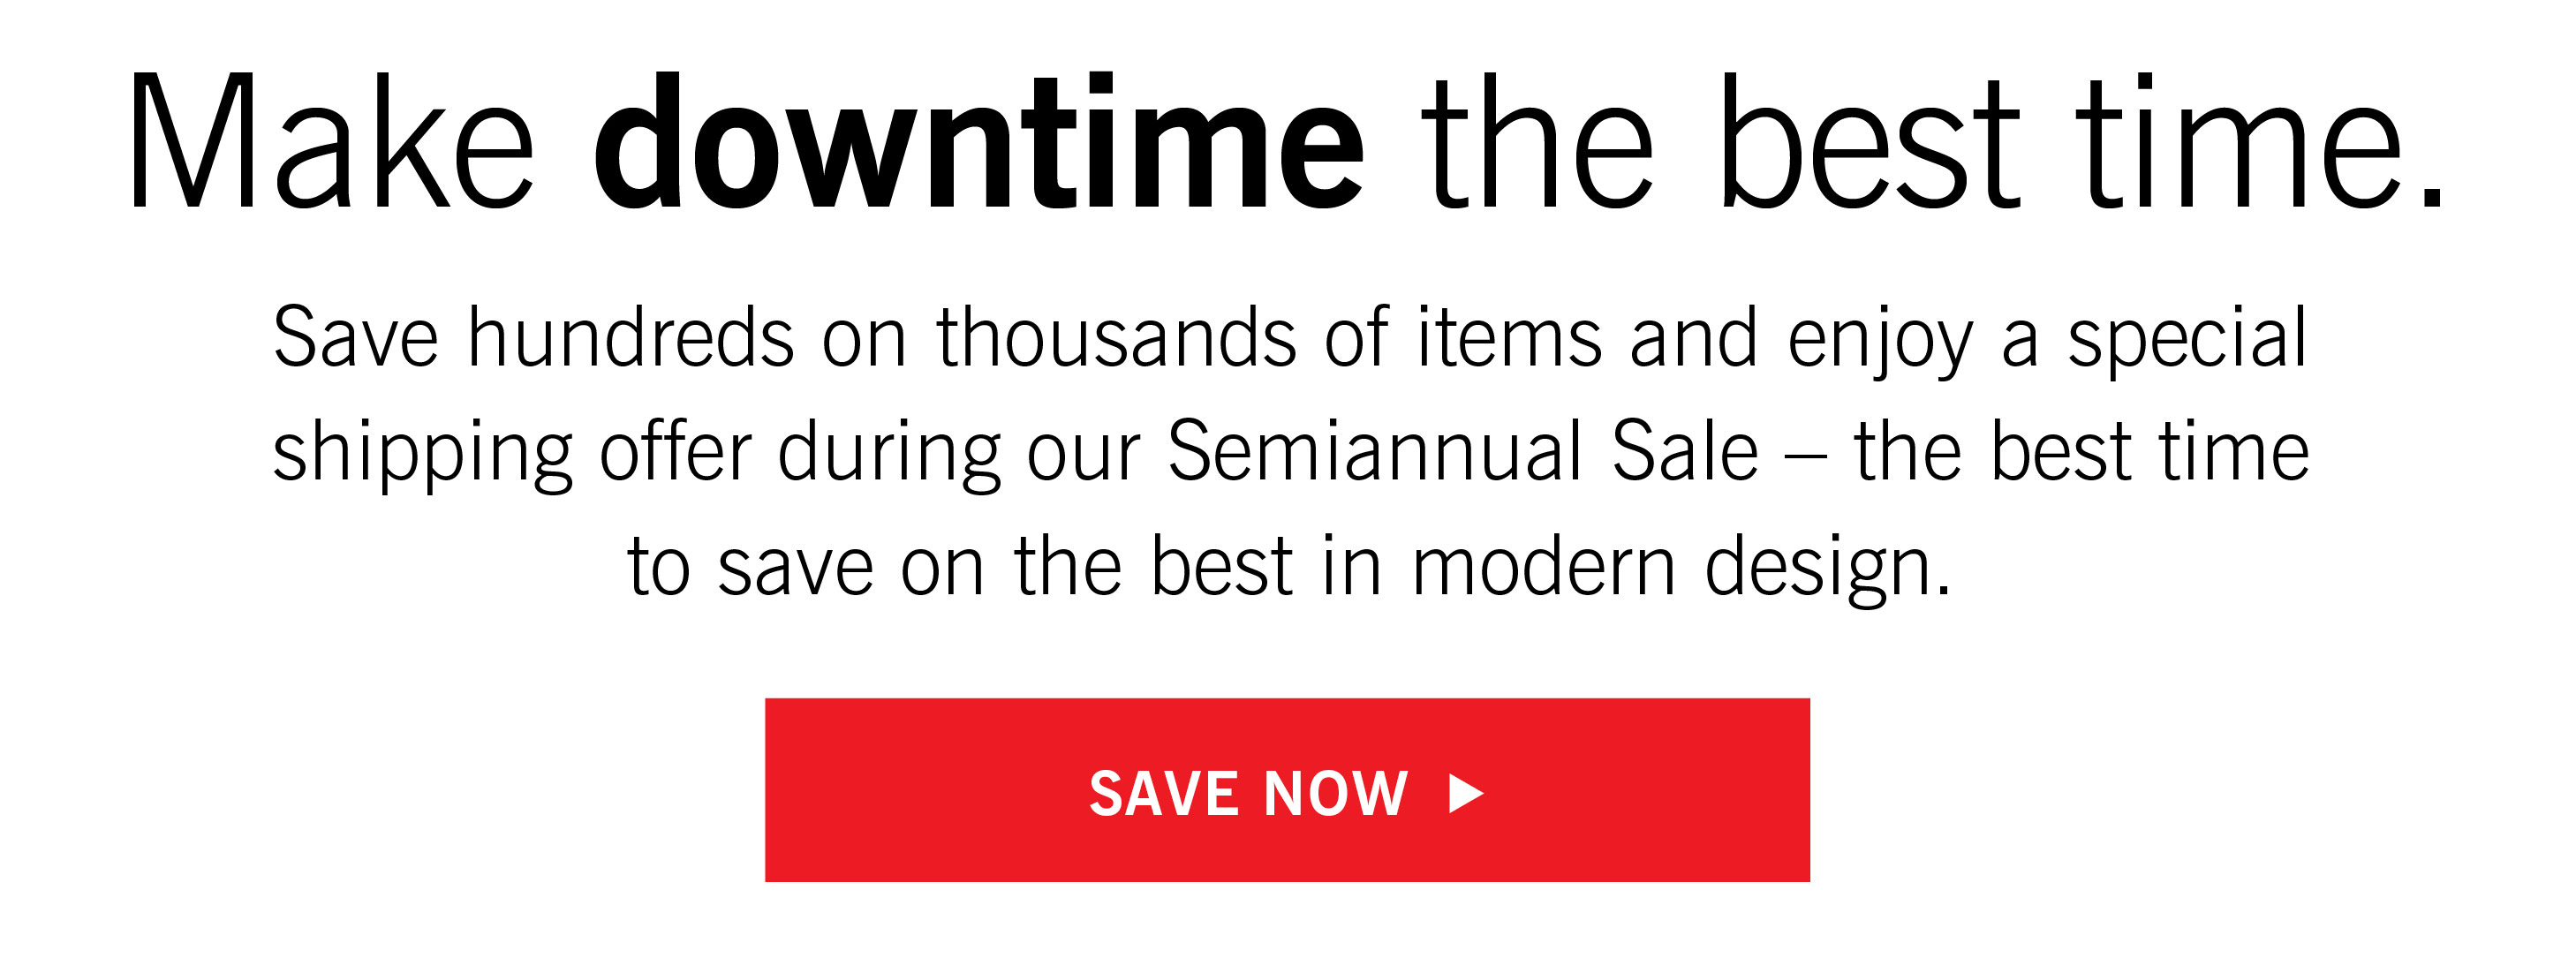 Save hundreds on thousands of items and enjoy a special shipping offer during our Semiannual Sale – the best time to save on the best in modern design.